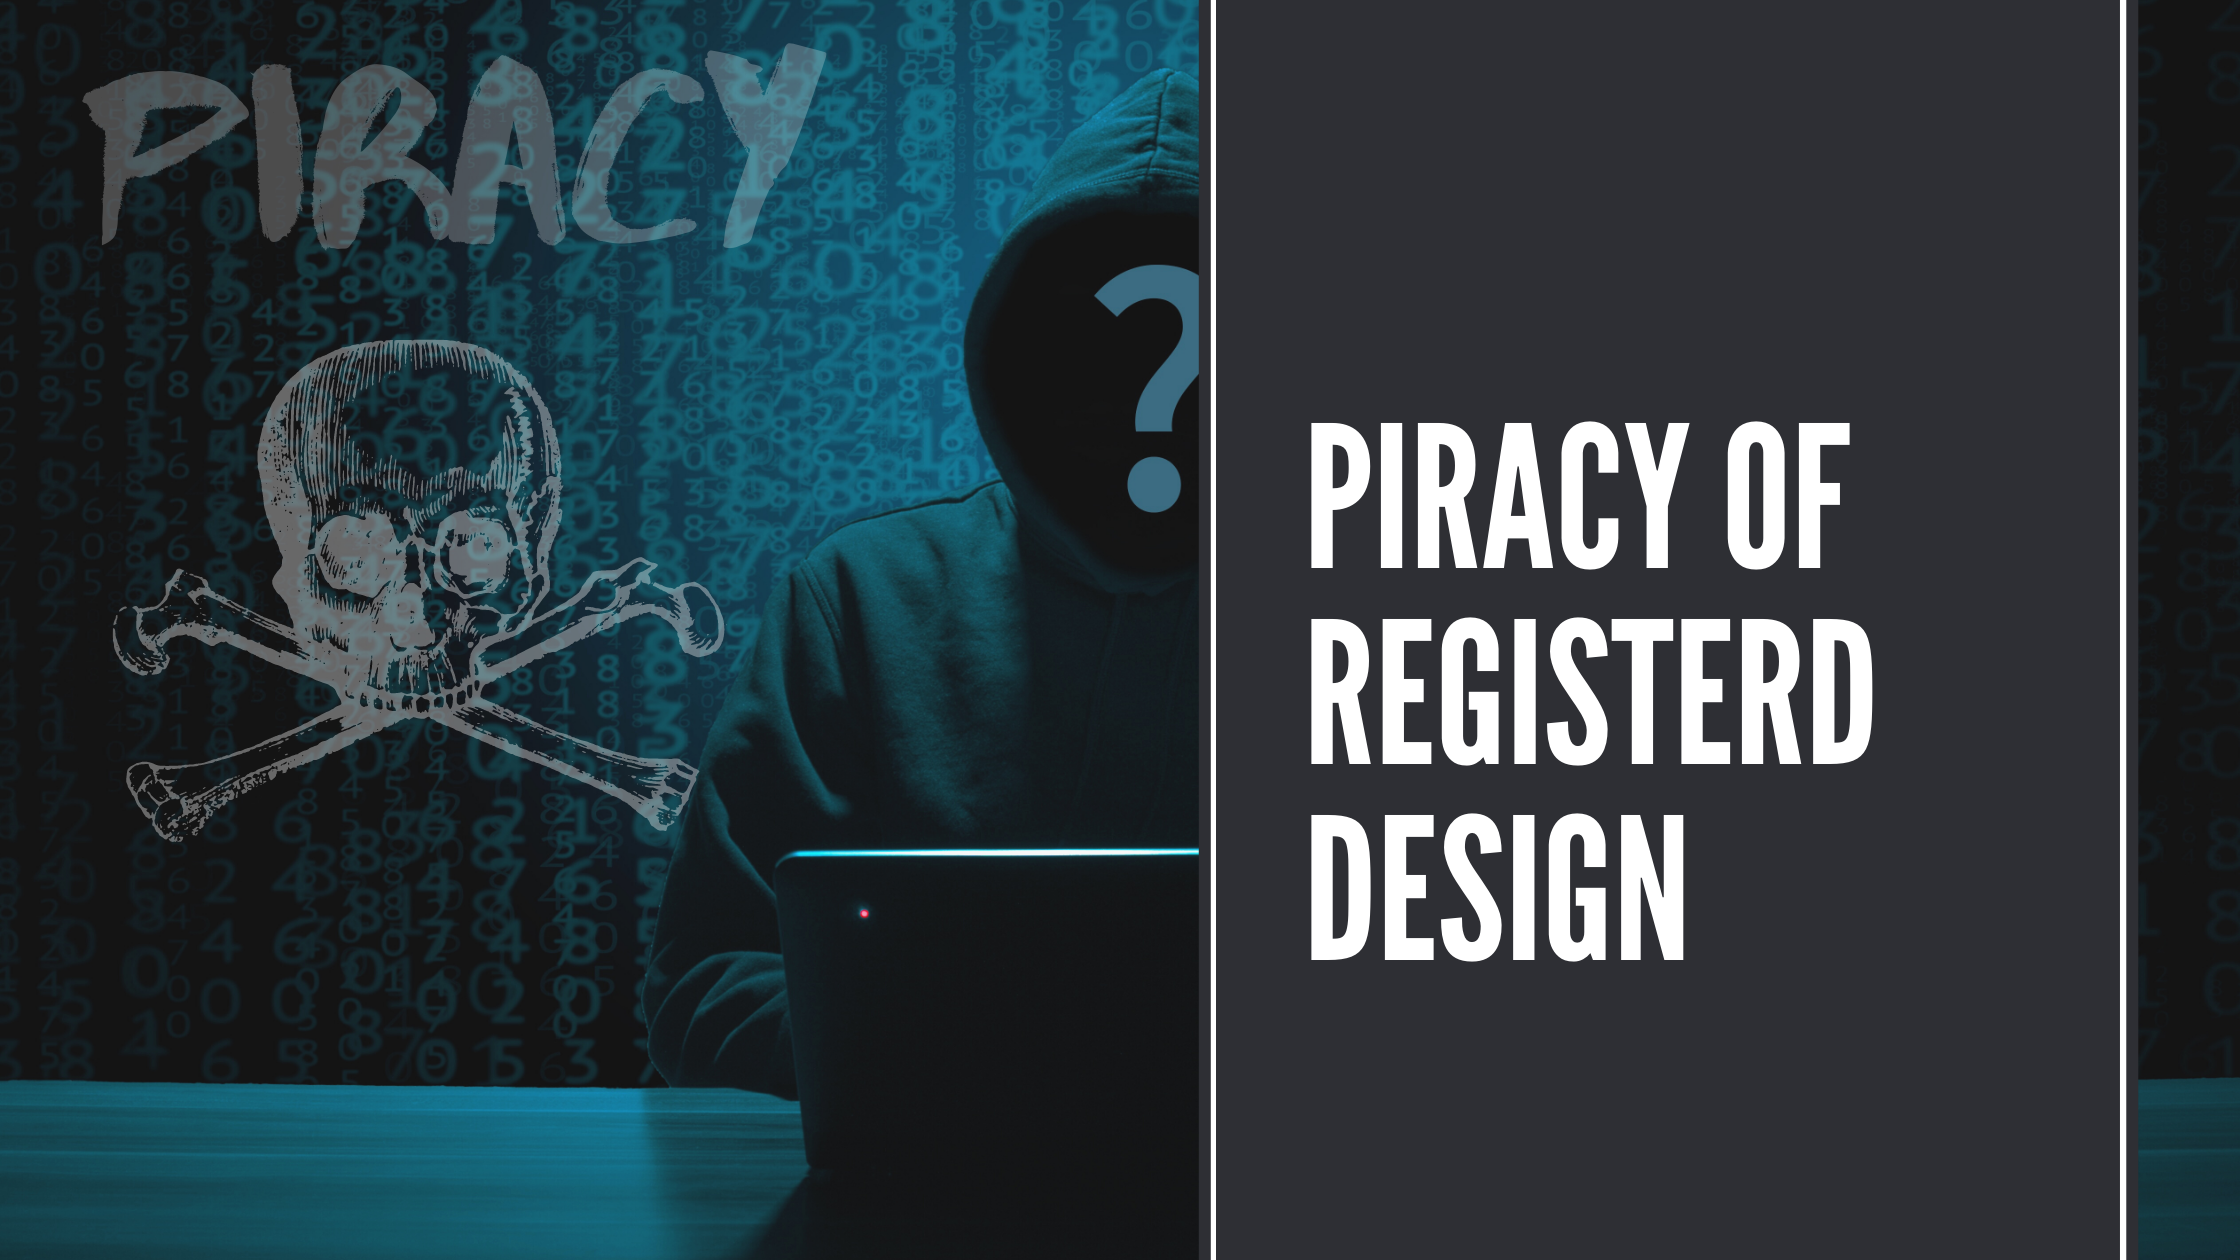 piracy of registered design